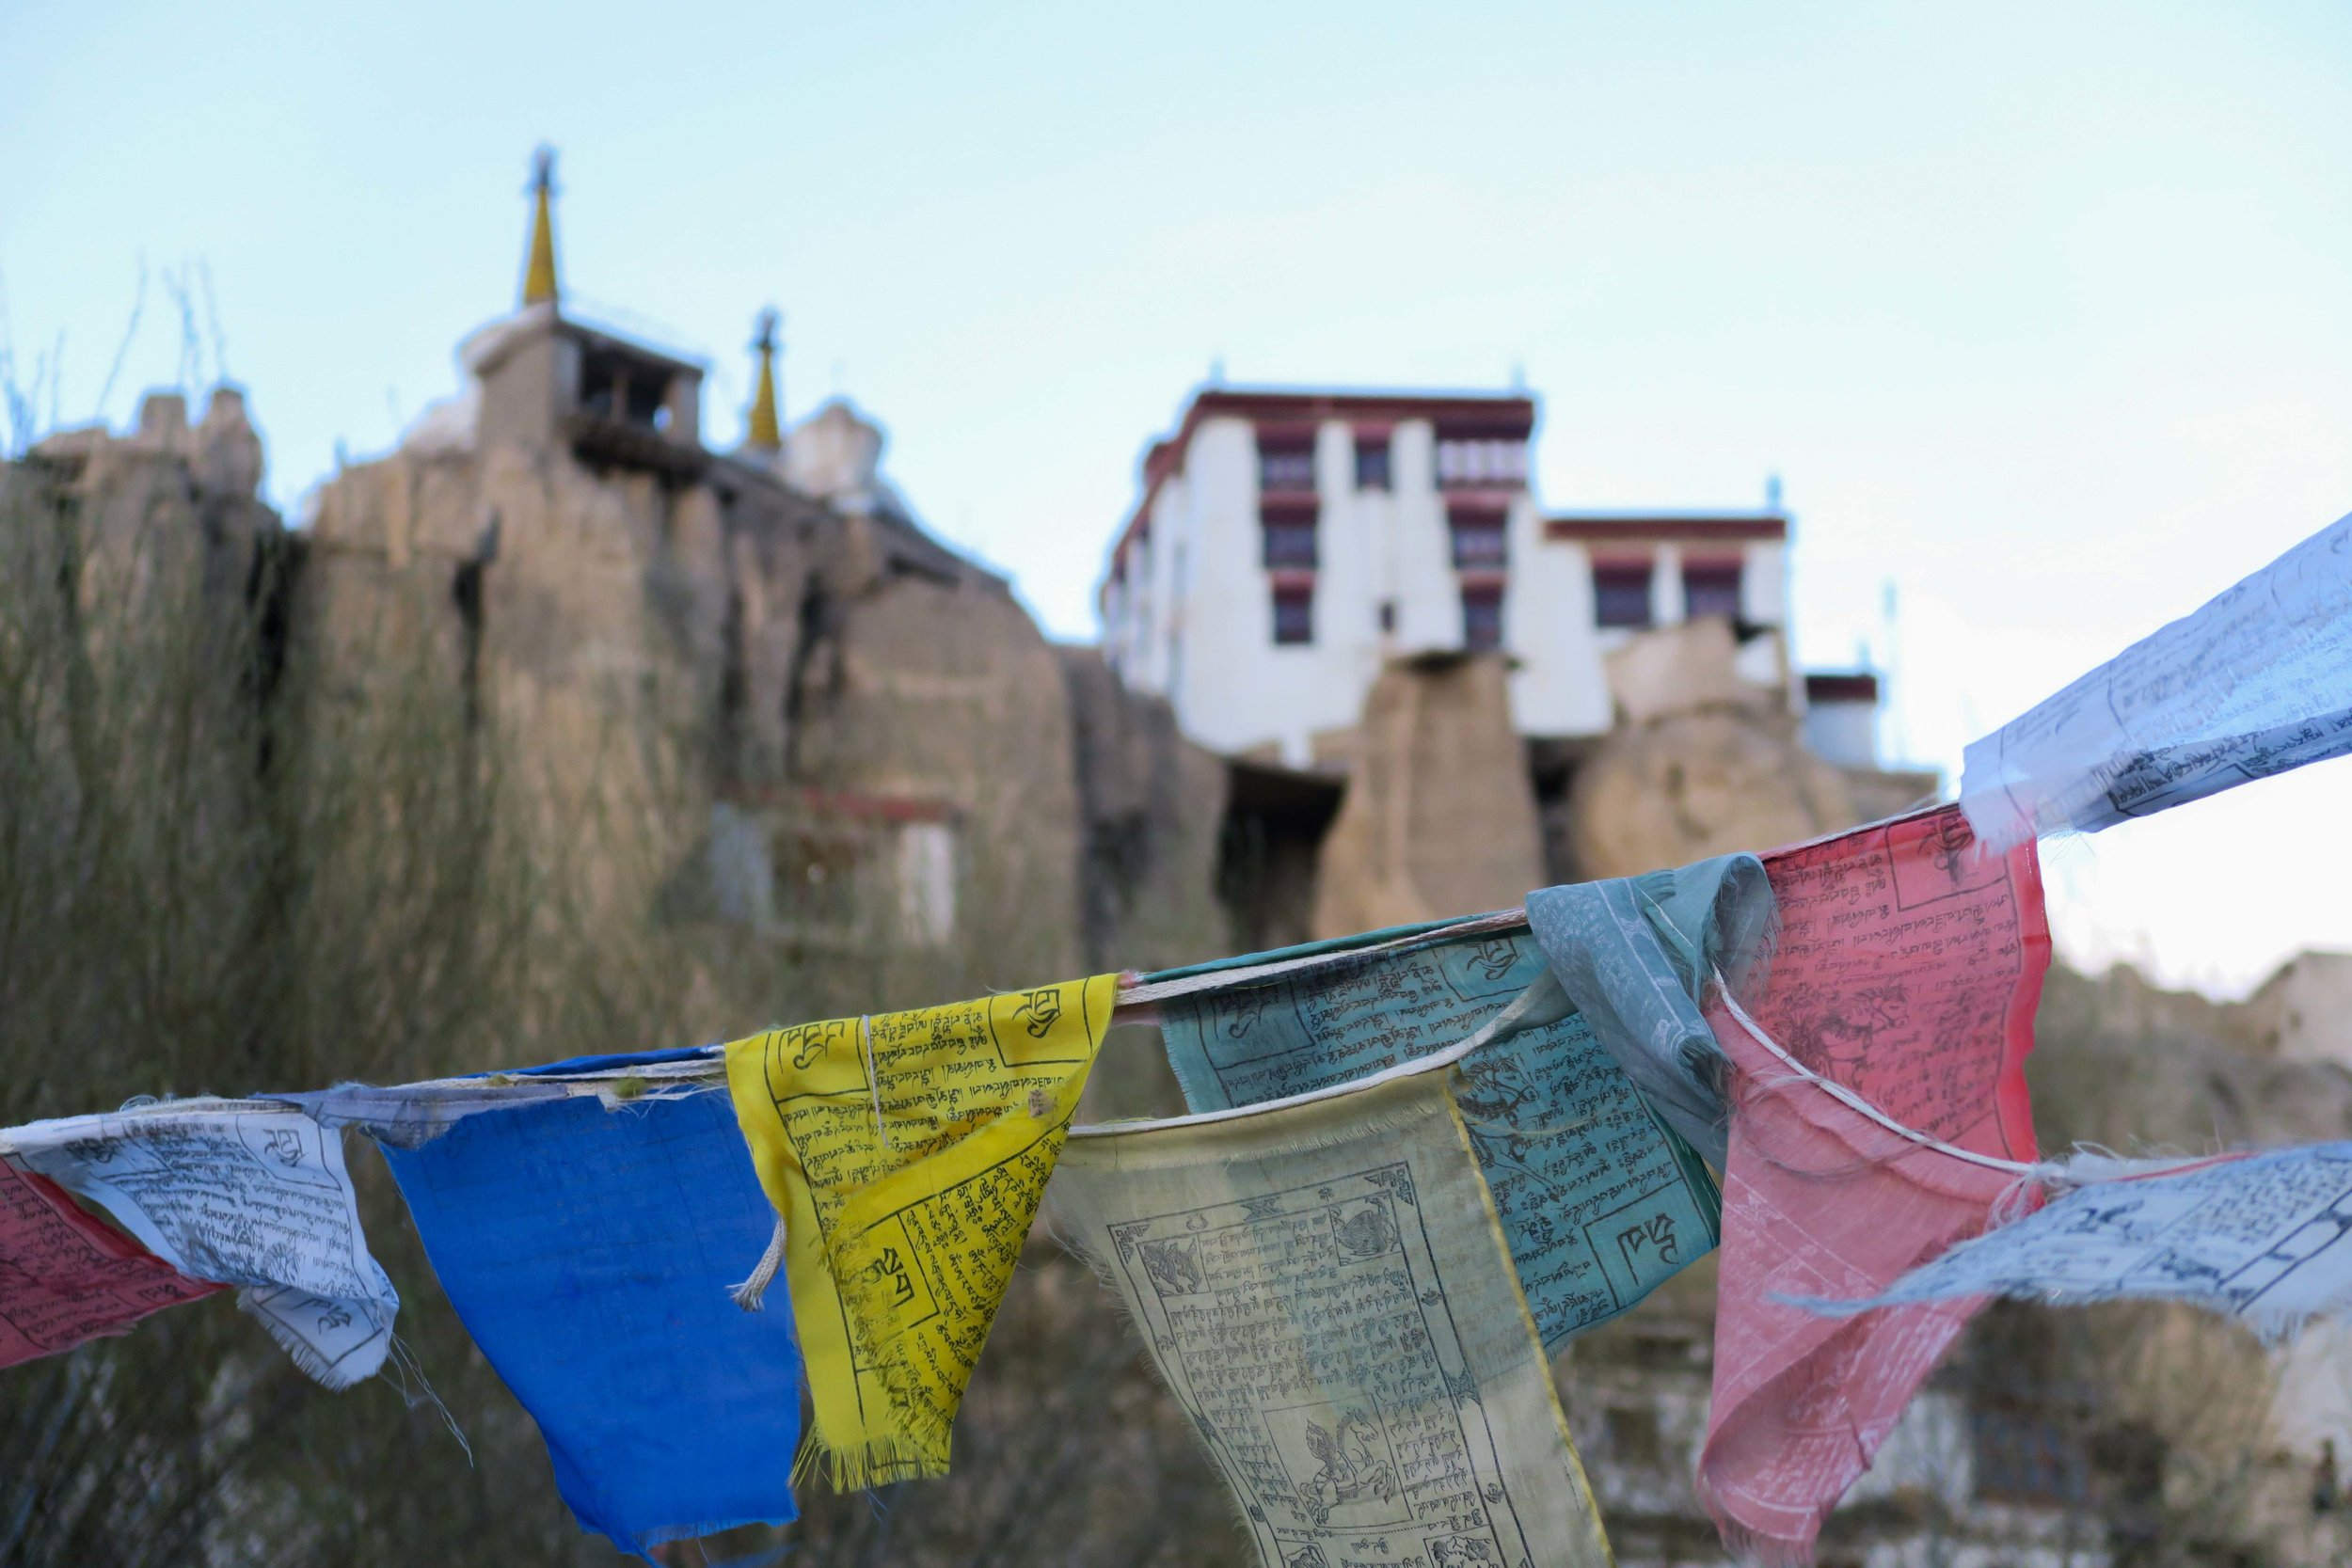 Lamayuru Monastery overlooks rooftop prayer flags